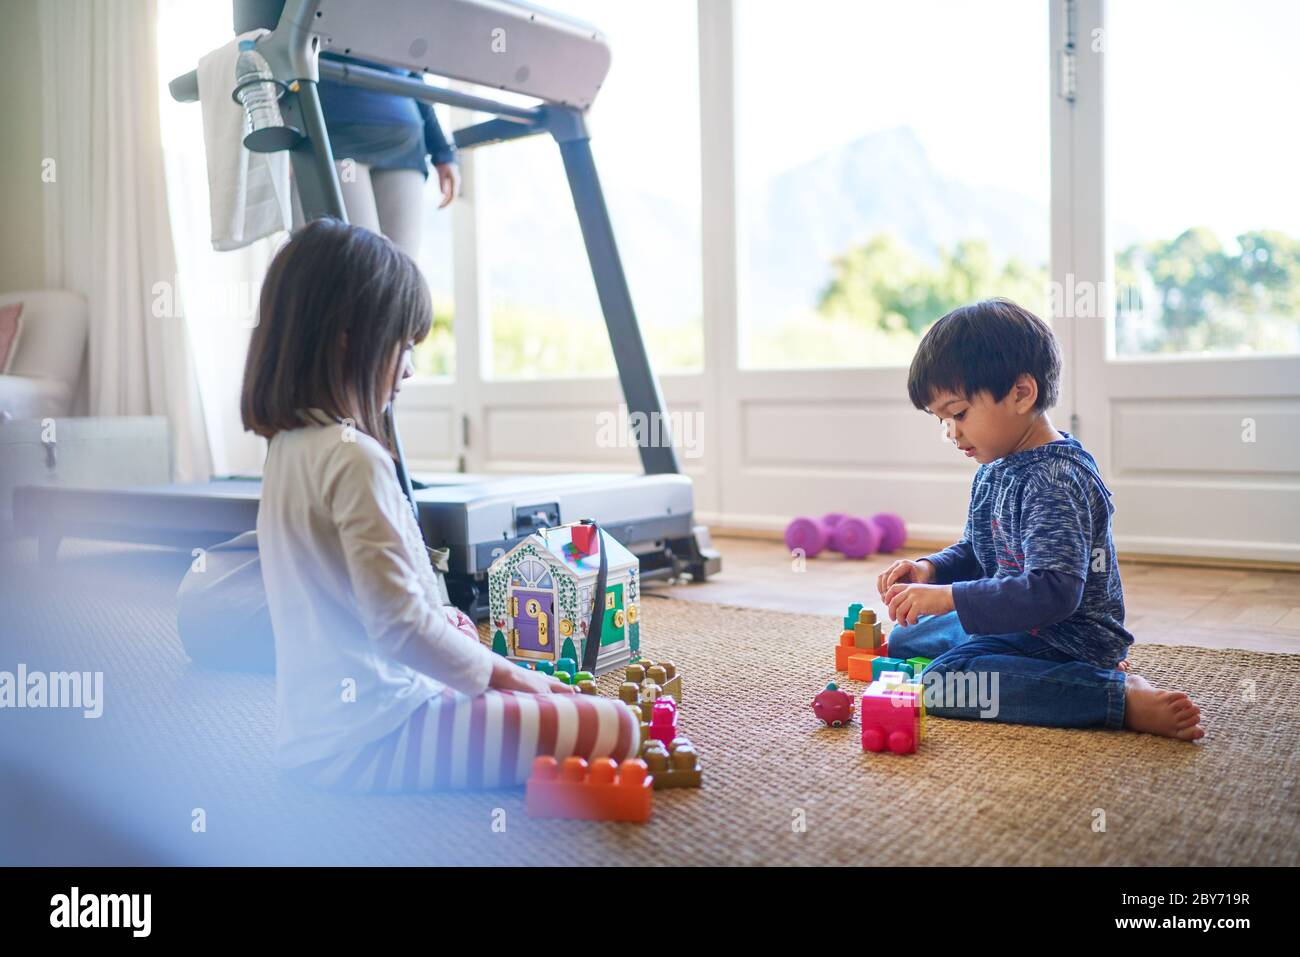 Kids playing with toys on floor by mother on treadmill Stock Photo